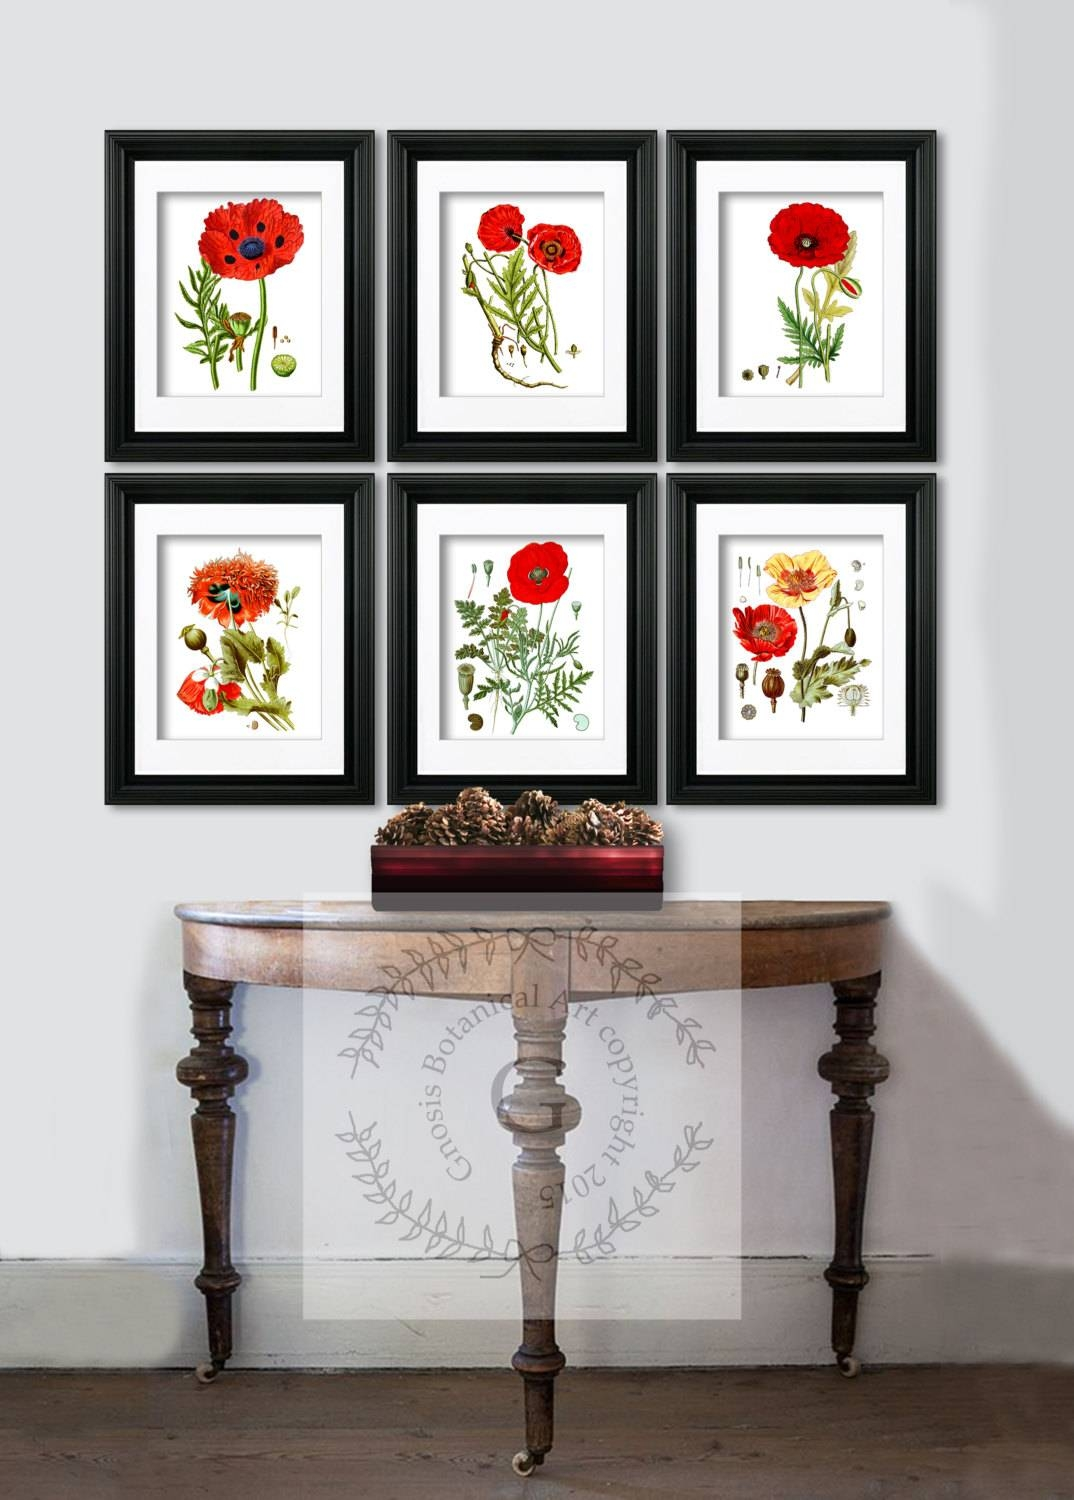 Red Poppy Decor Botanical Prints Red Flowers Poppy Wall Art With Regard To 2017 Wall Art Print Sets (View 9 of 20)